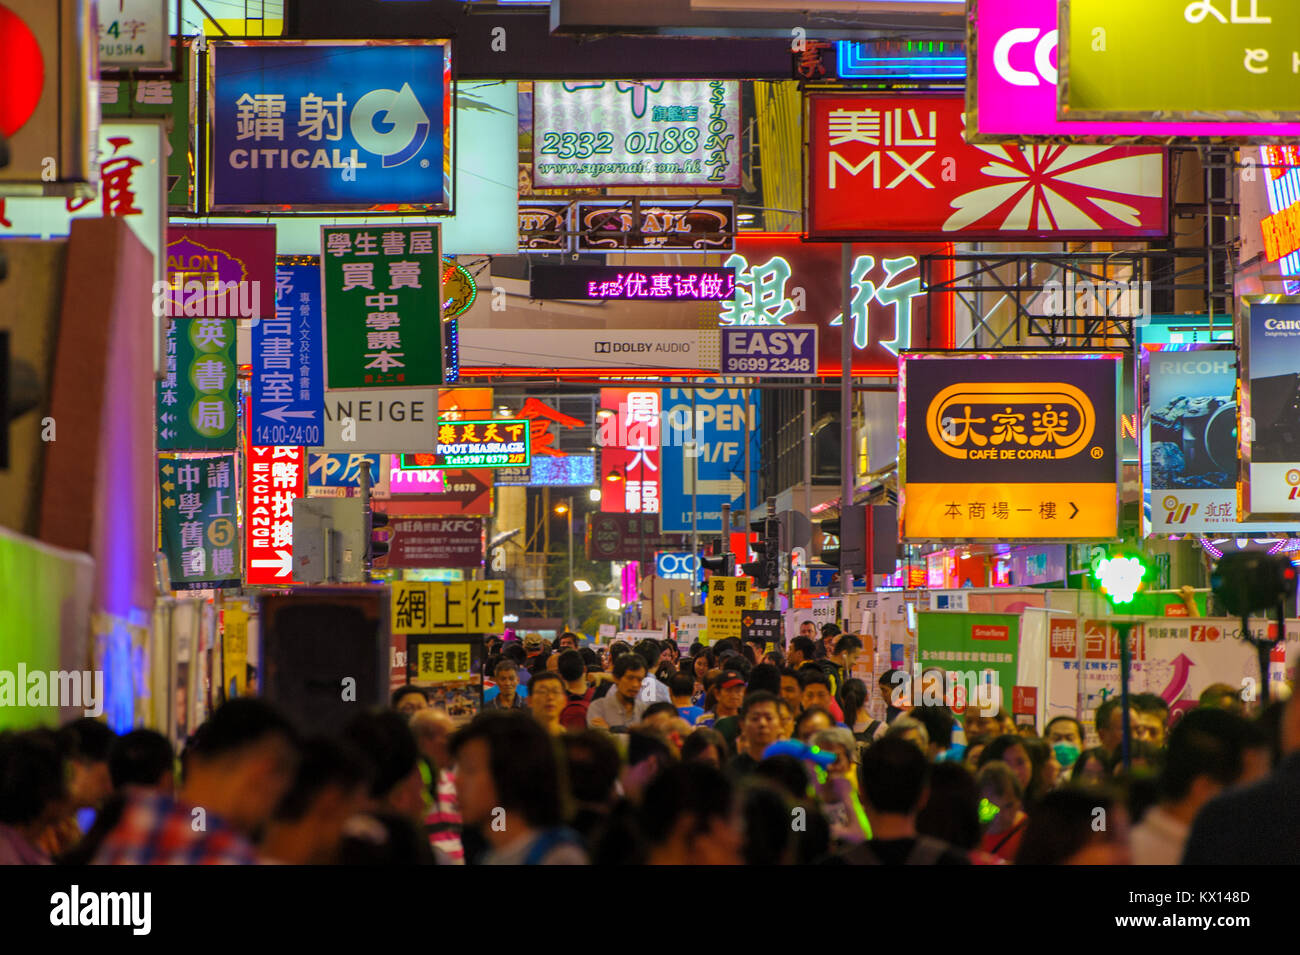 street view of hong kong with many advertising billboards - Stock Image